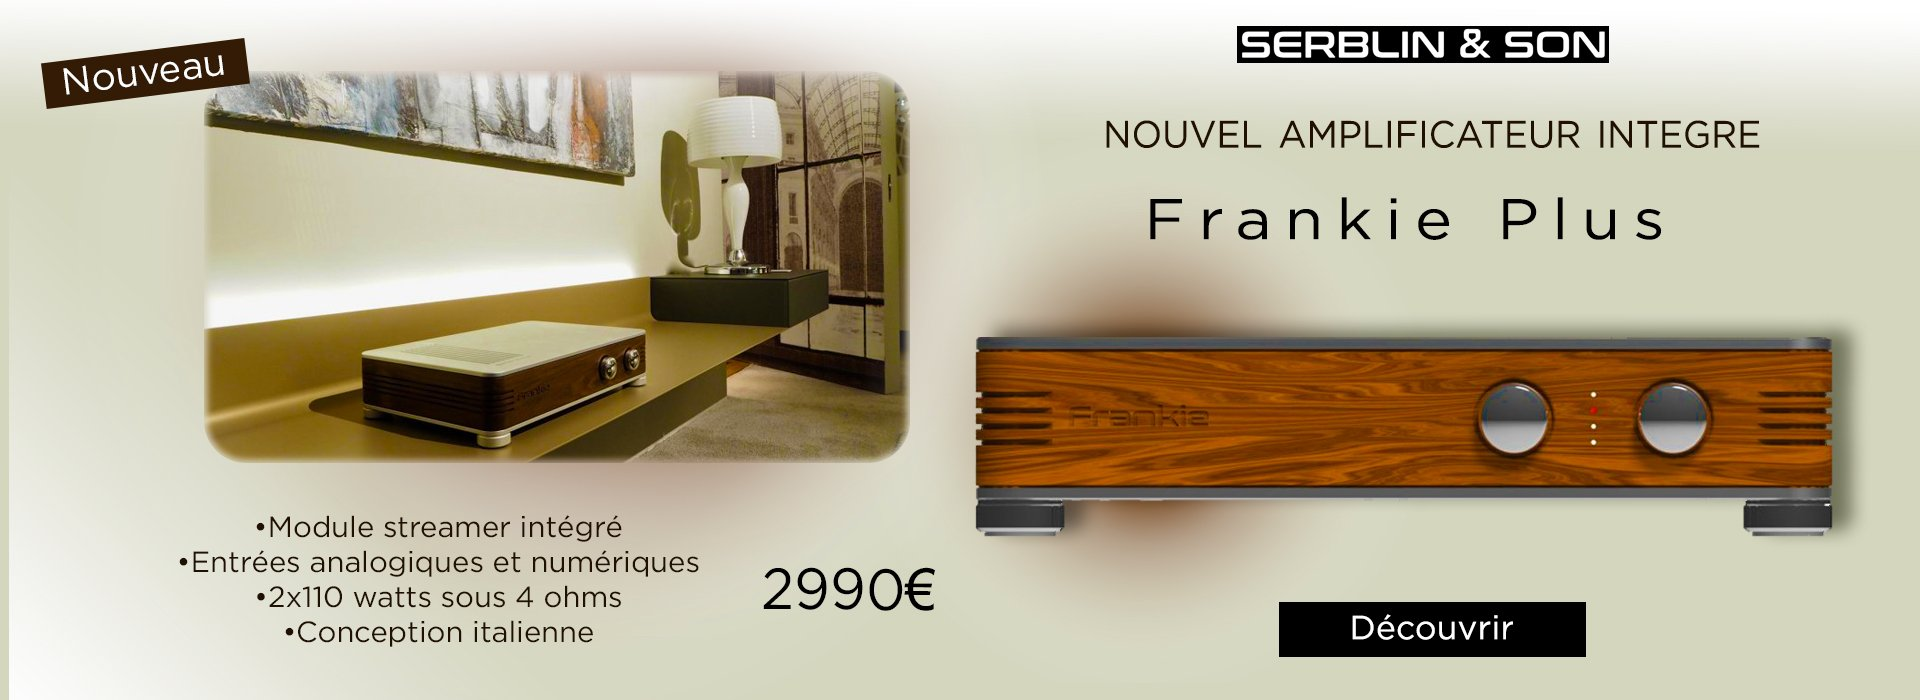 Serblin & Son Frankie Plus